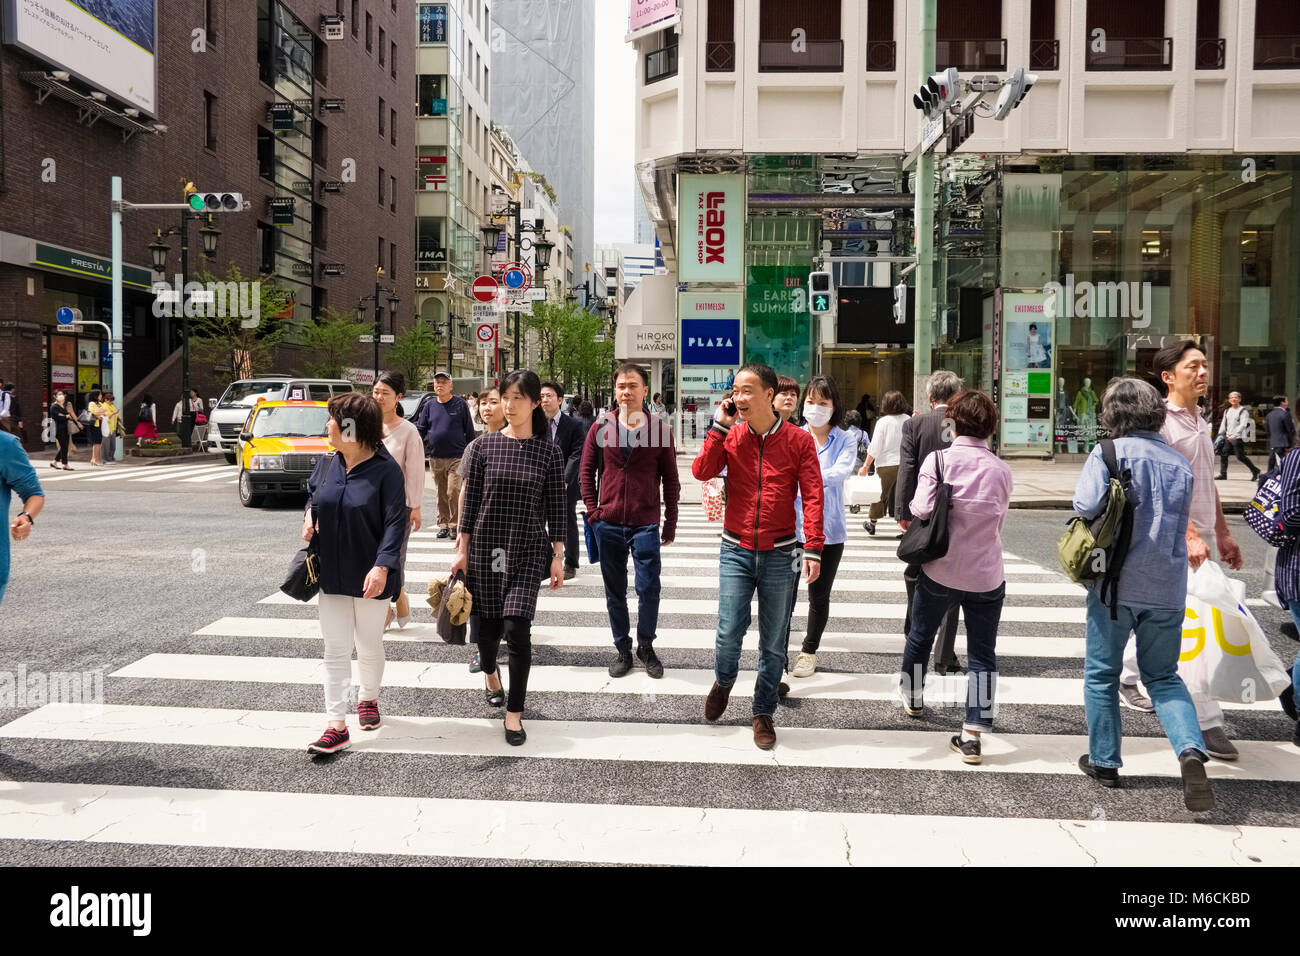 People on a pedestrian crossing in the Ginza district of Tokyo city, Japan - Stock Image